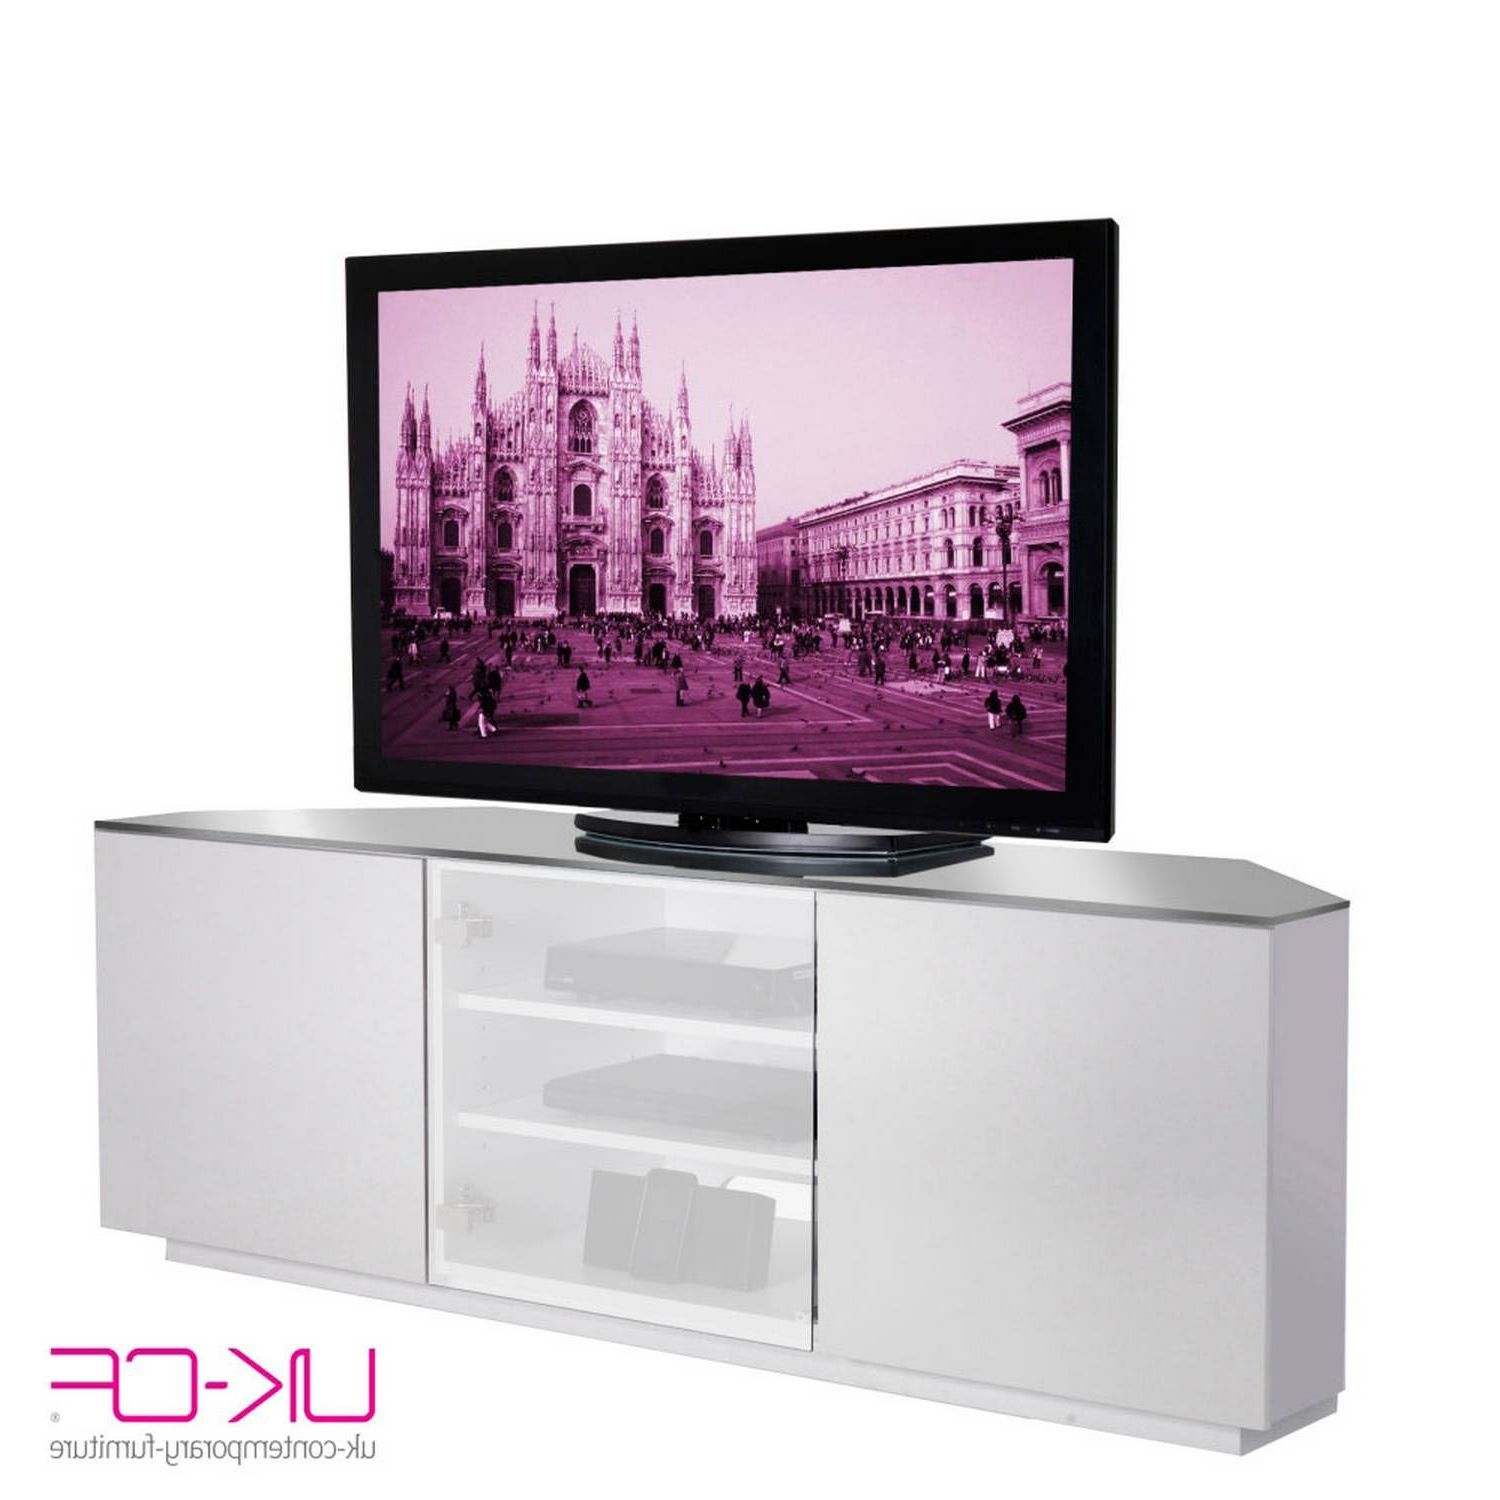 Home Throughout Most Popular Corner Tv Unit White Gloss (View 3 of 20)